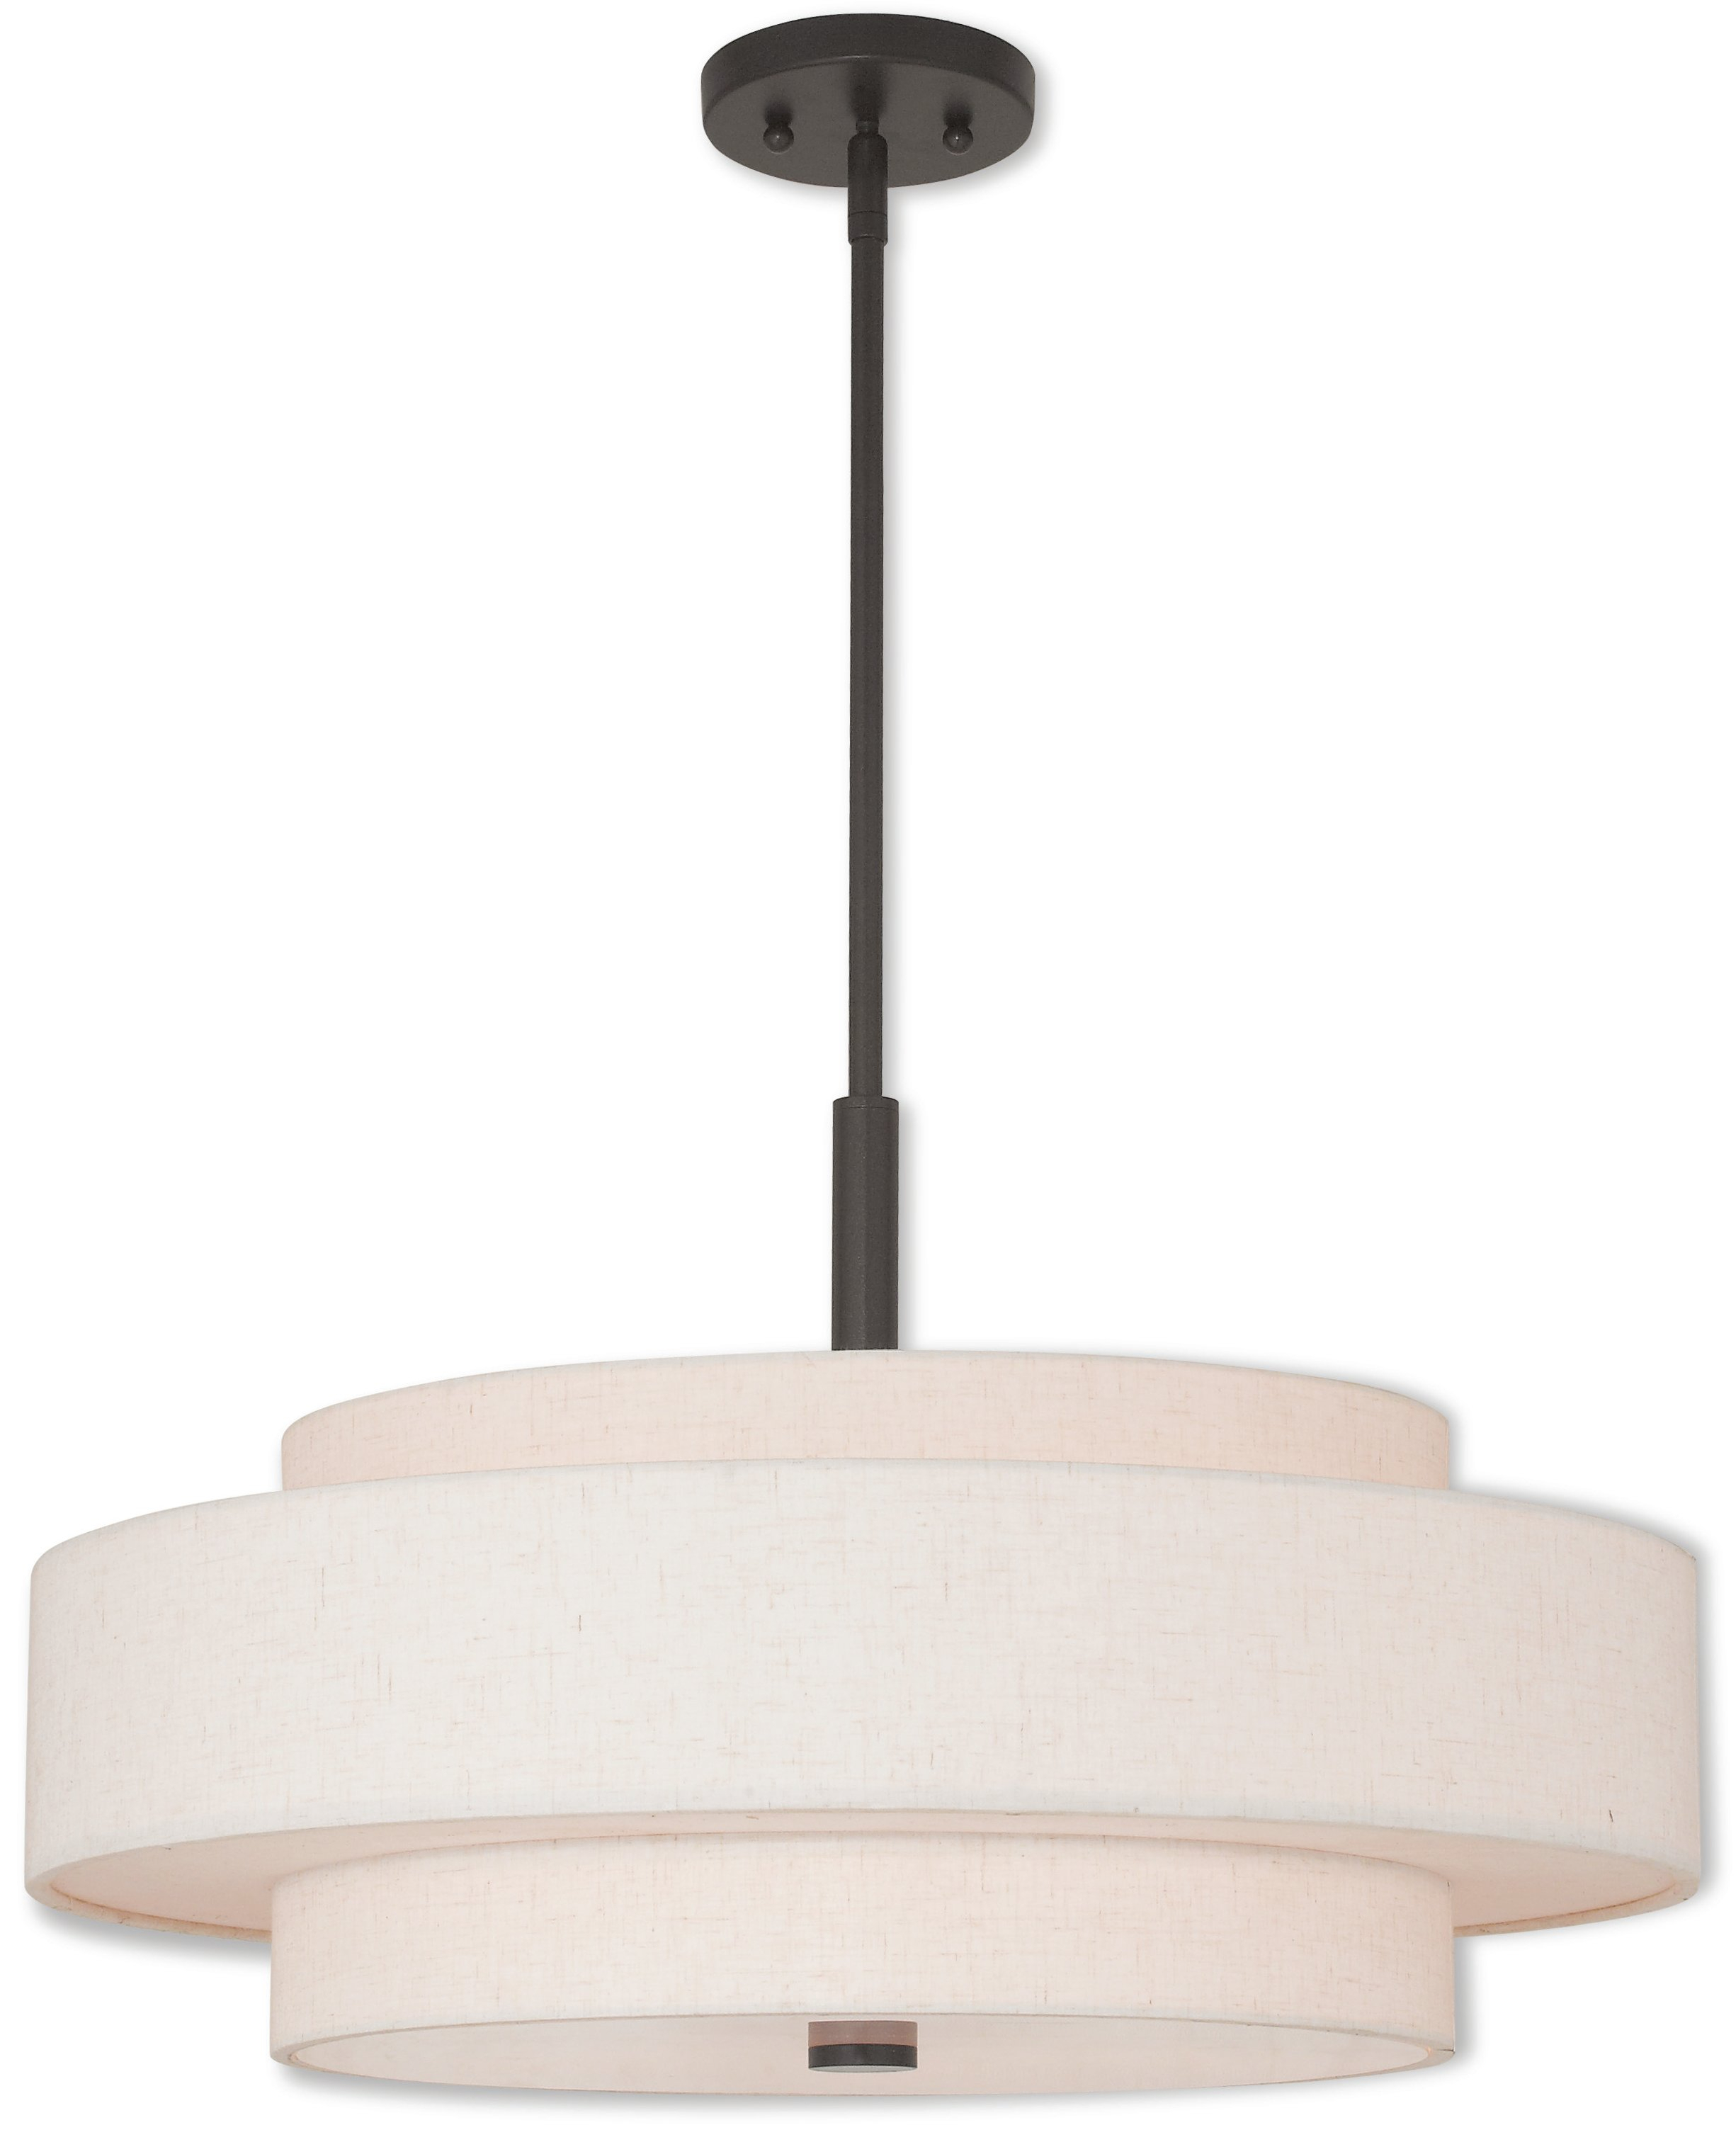 Alina 5 Light Drum Chandelier With Breithaup 7 Light Drum Chandeliers (View 12 of 30)